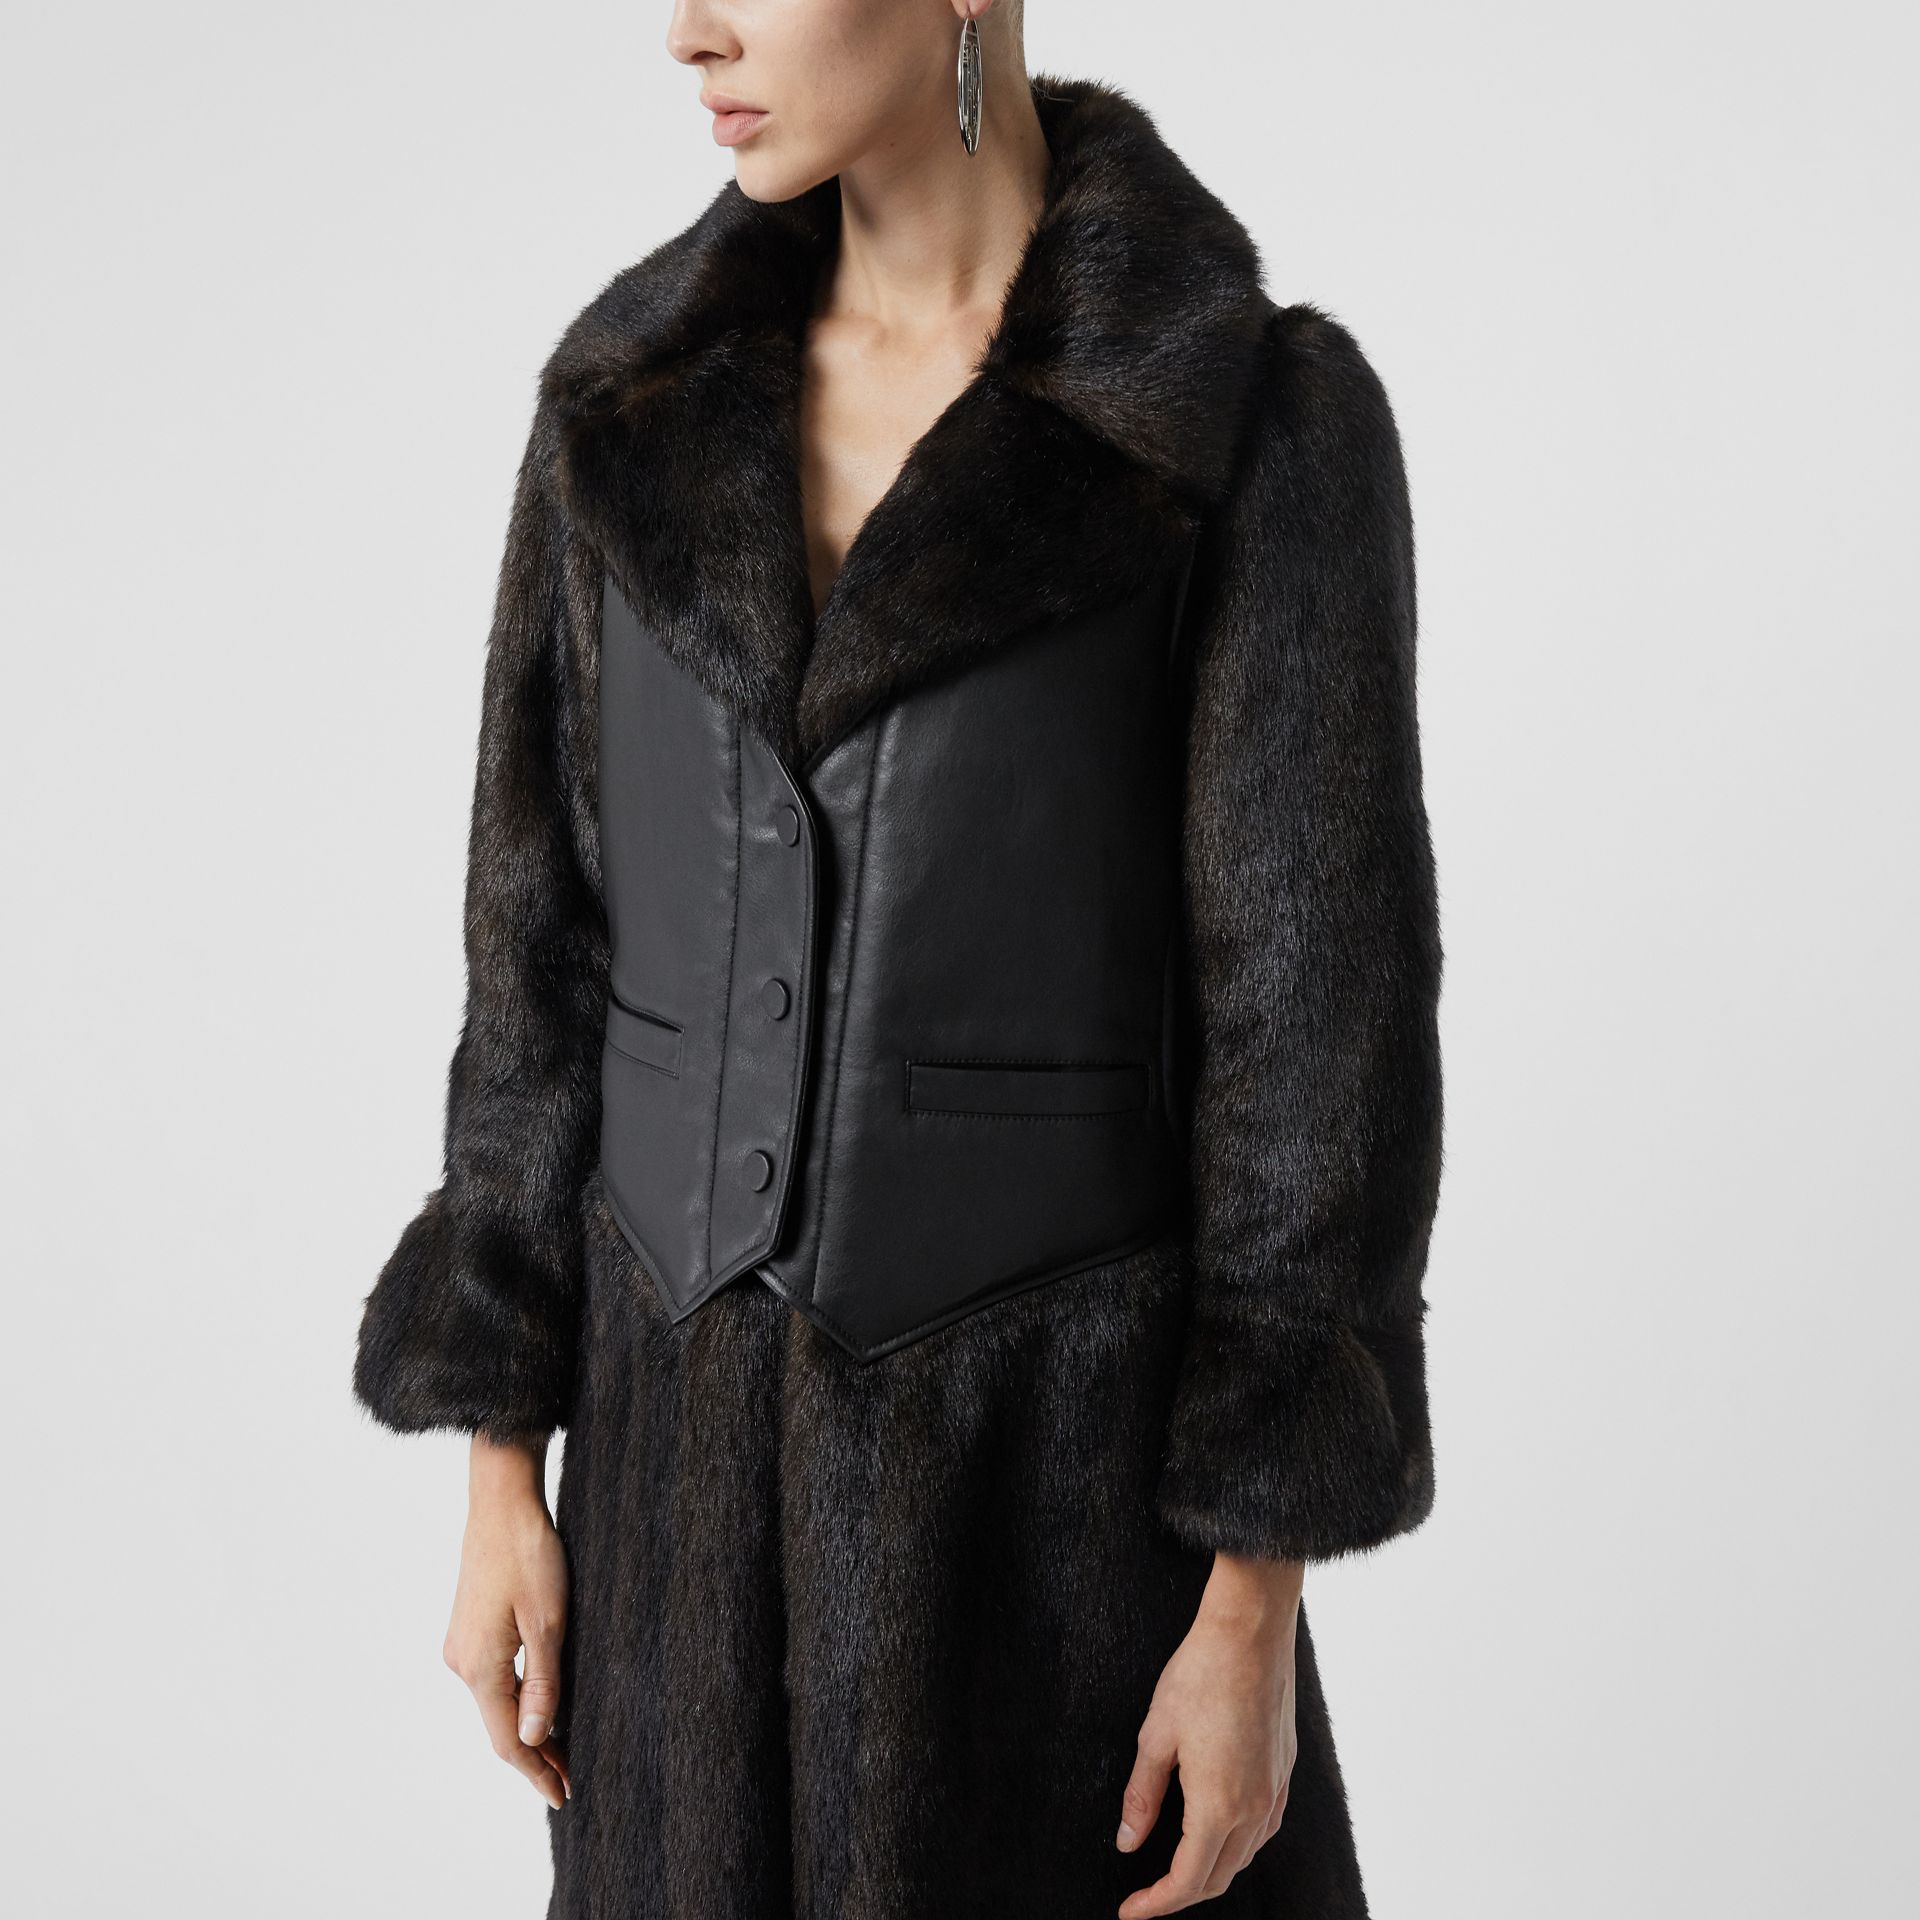 Waistcoat Detail Faux Fur Coat in Black - Women | Burberry - gallery image 4